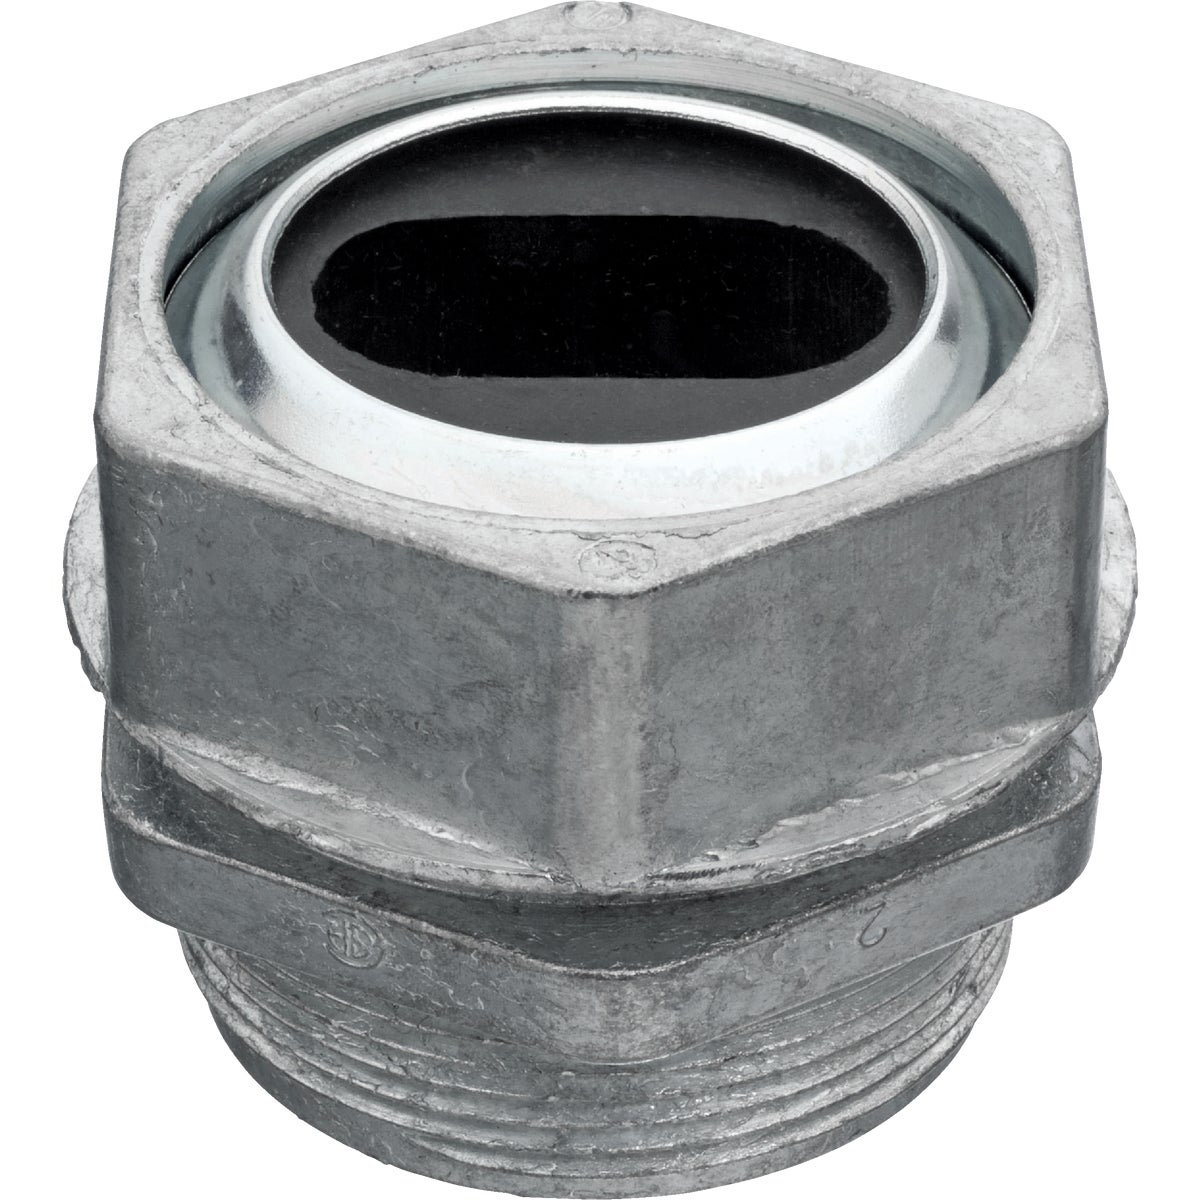 "1-1/4"" WATRTTE CONNECTOR - WT204B1 by Thomas & Betts"